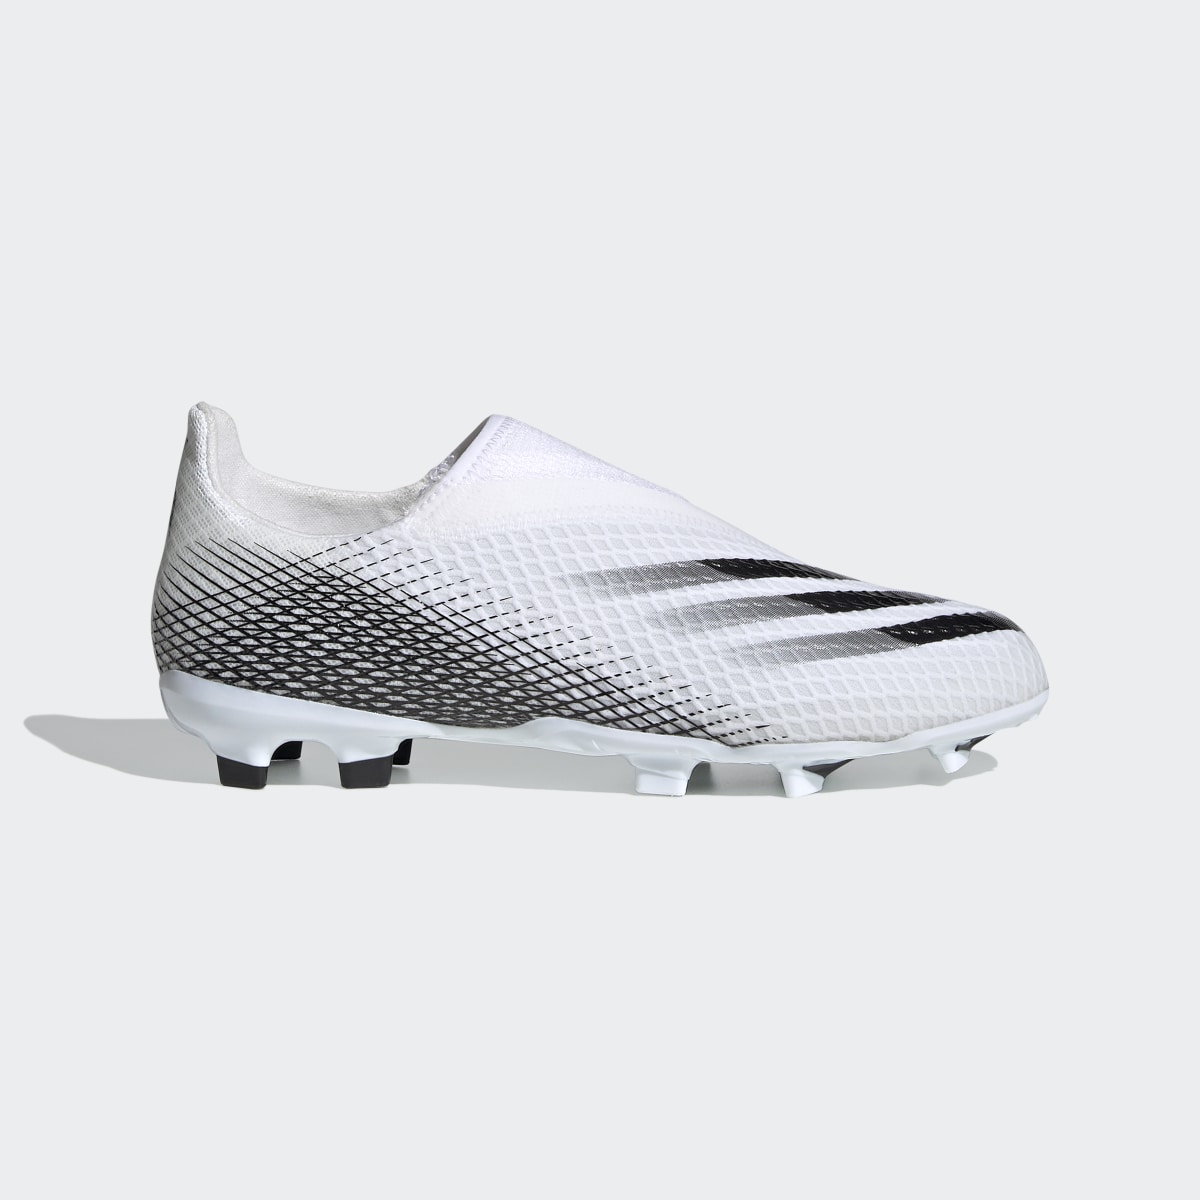 X Ghosted.3 Laceless Firm Ground Fotballsko